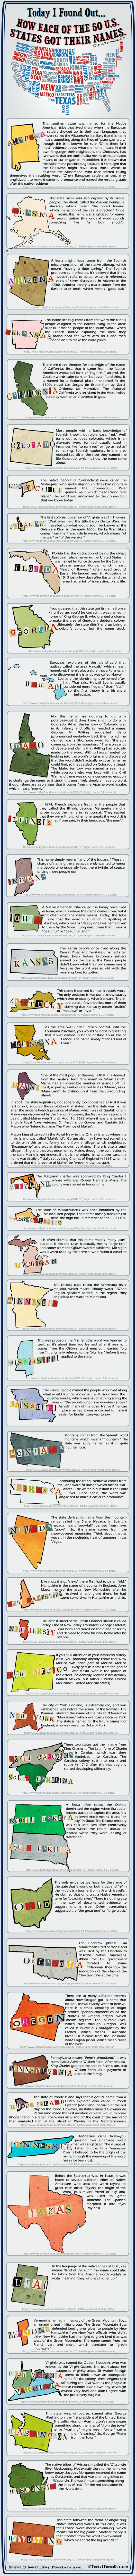 How Each Of The 50 US States Got Their Names